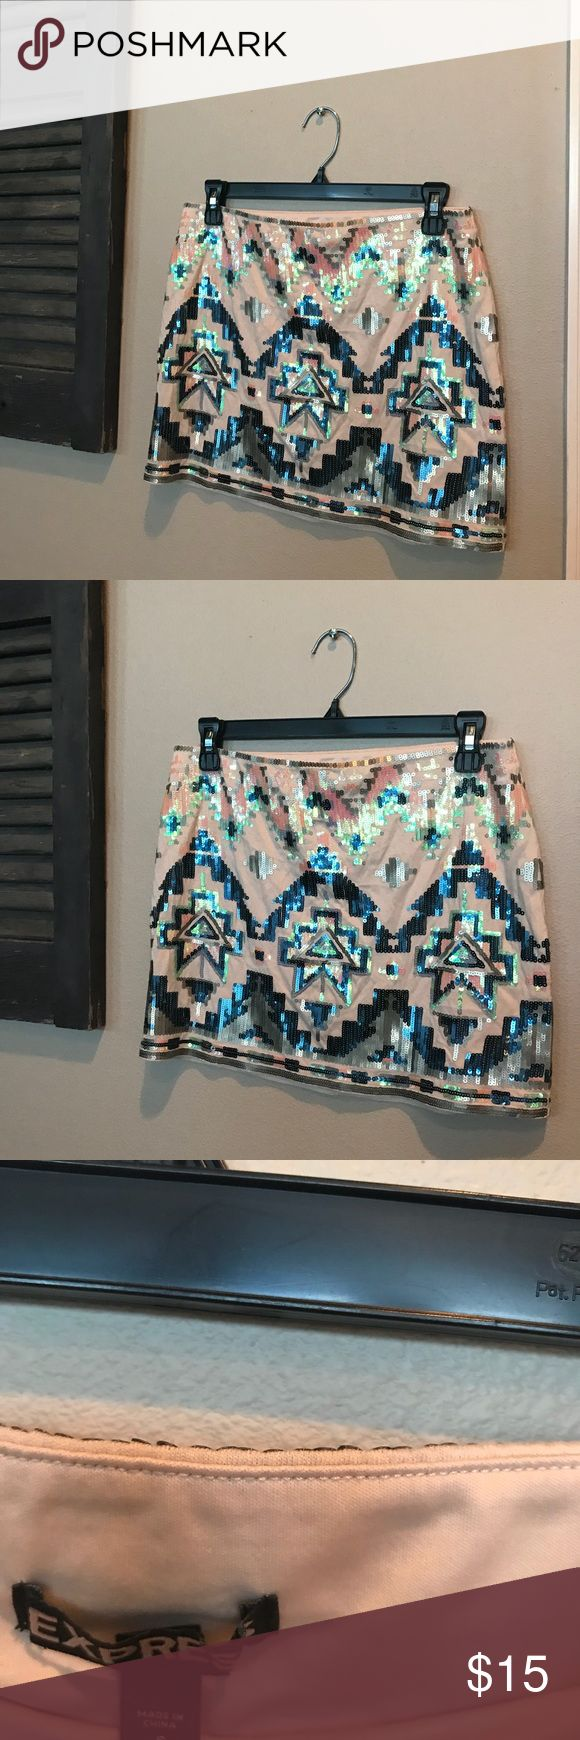 Perfect for VEGAS!! Express Aztec sequin skirt Mini skirt, only been worn twice, looks great with a grey t-shirt, blue denim long sleeve shirt or a white blouse. Express Skirts Mini